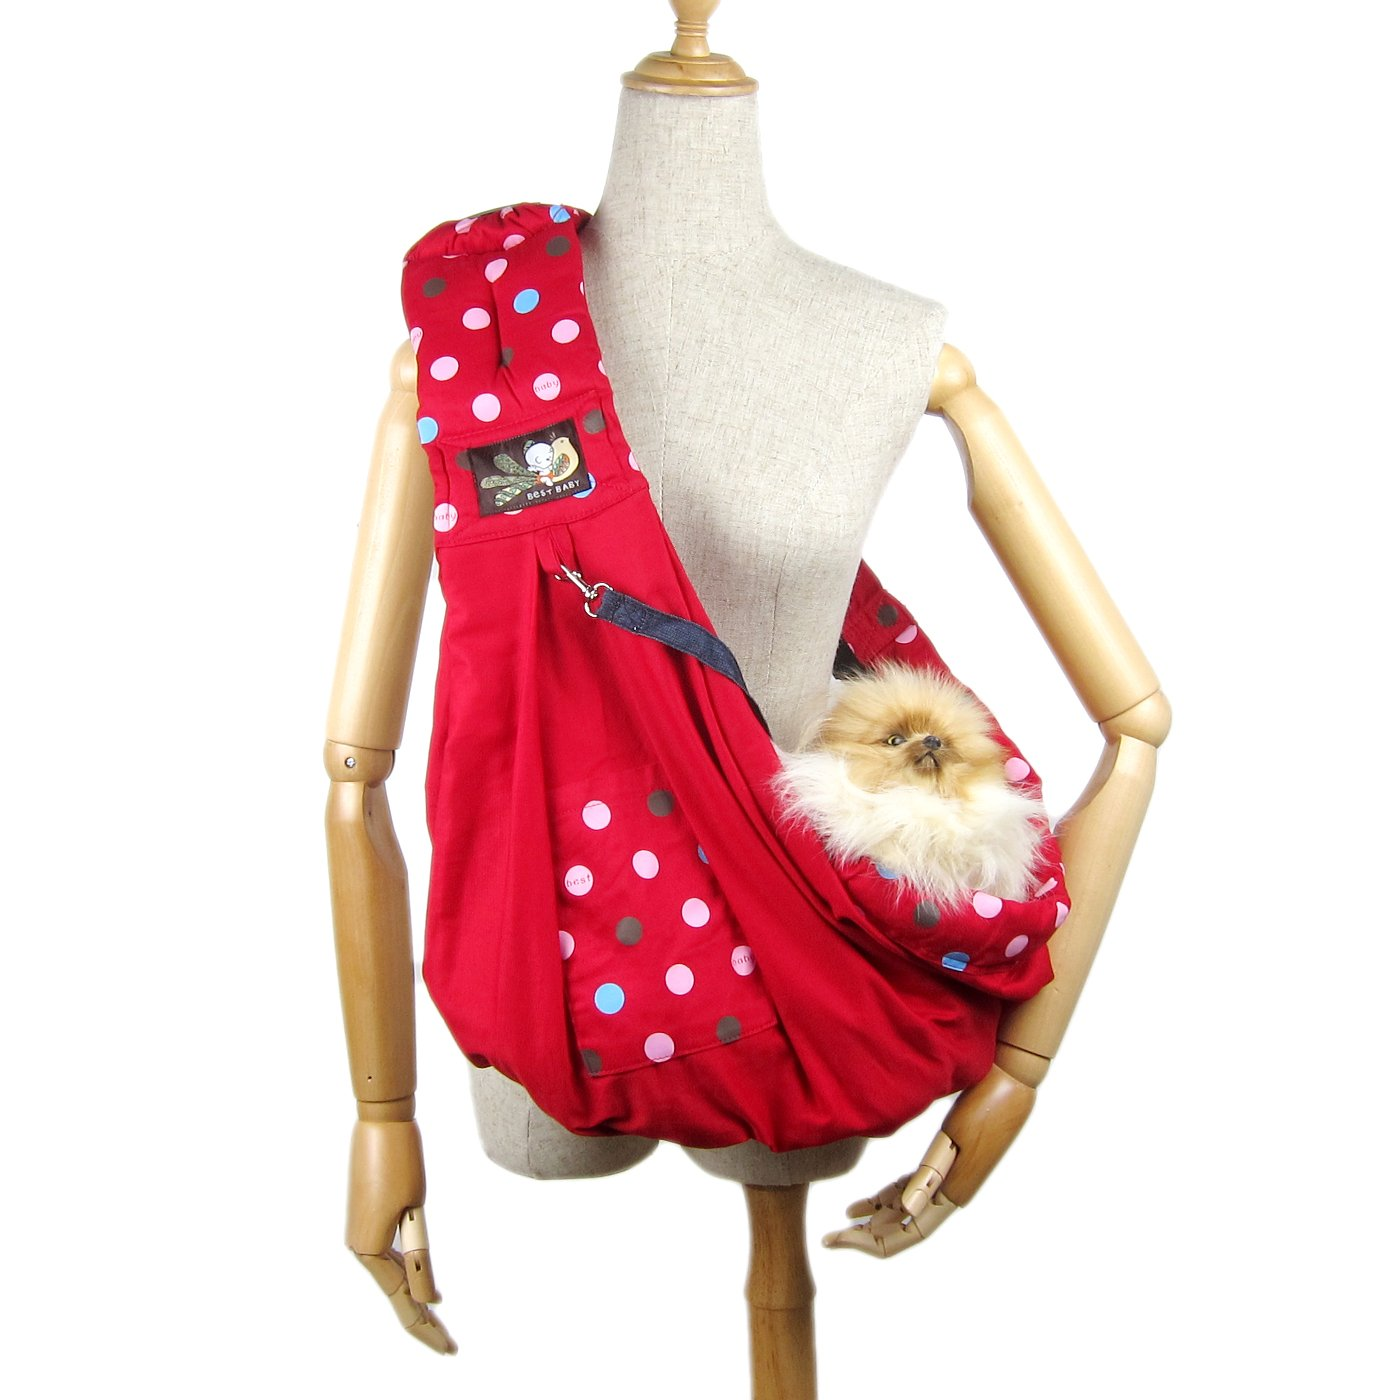 Alfie Pet by Petoga Couture - Hollis Pet Sling Carrier with Adjustable Strap - Color: Red by Alfie (Image #1)